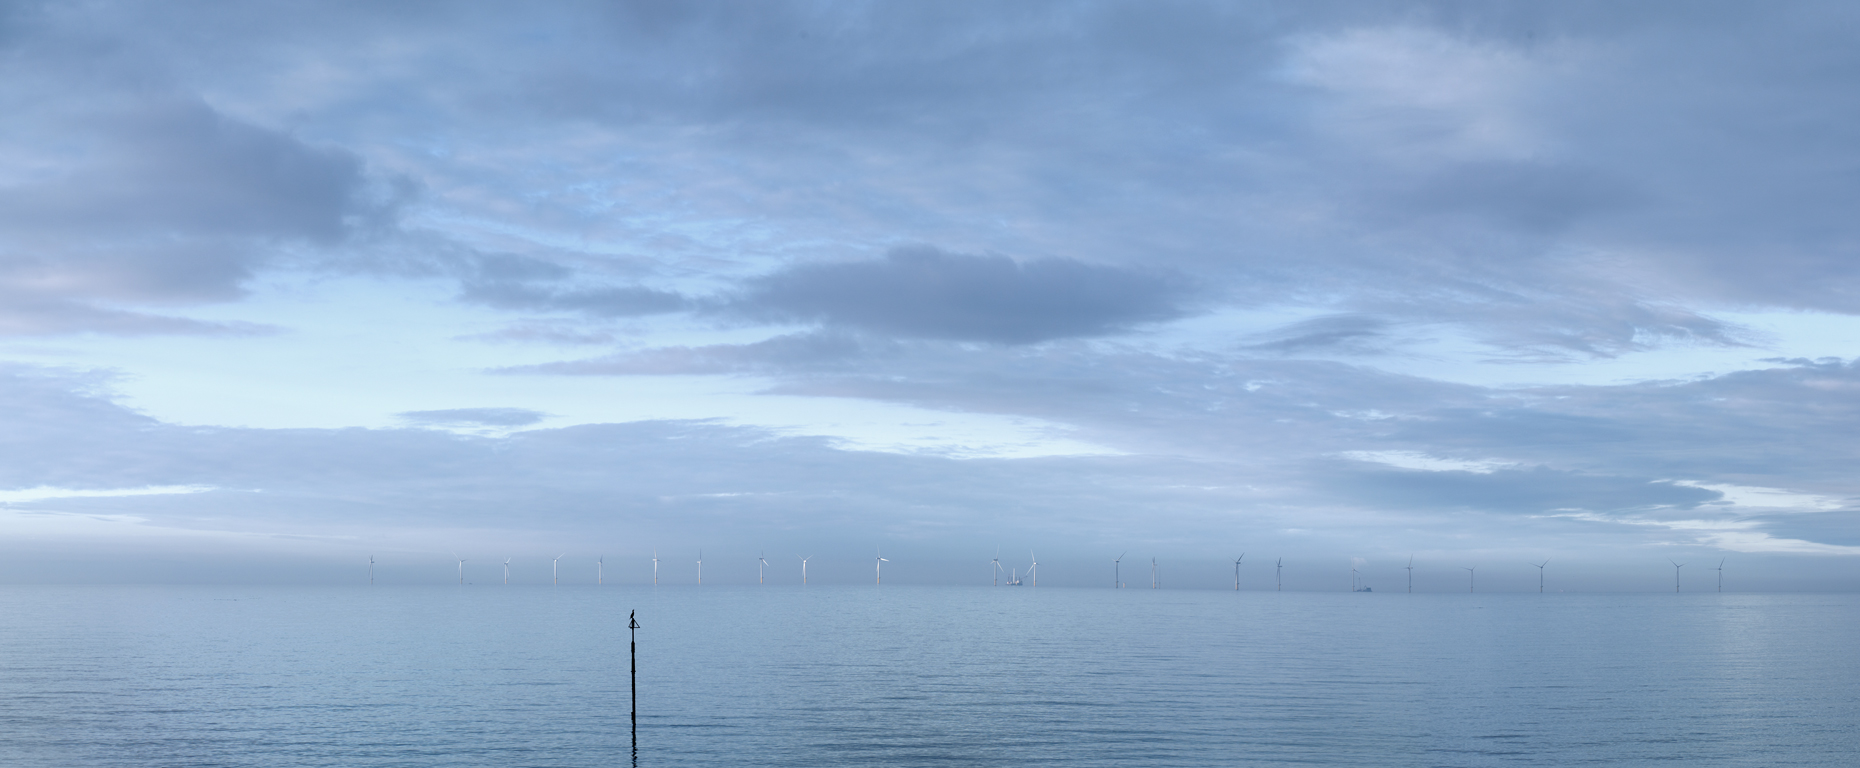 Jon Wyatt Photography - Wind farm, Colwyn Bay, North Wales